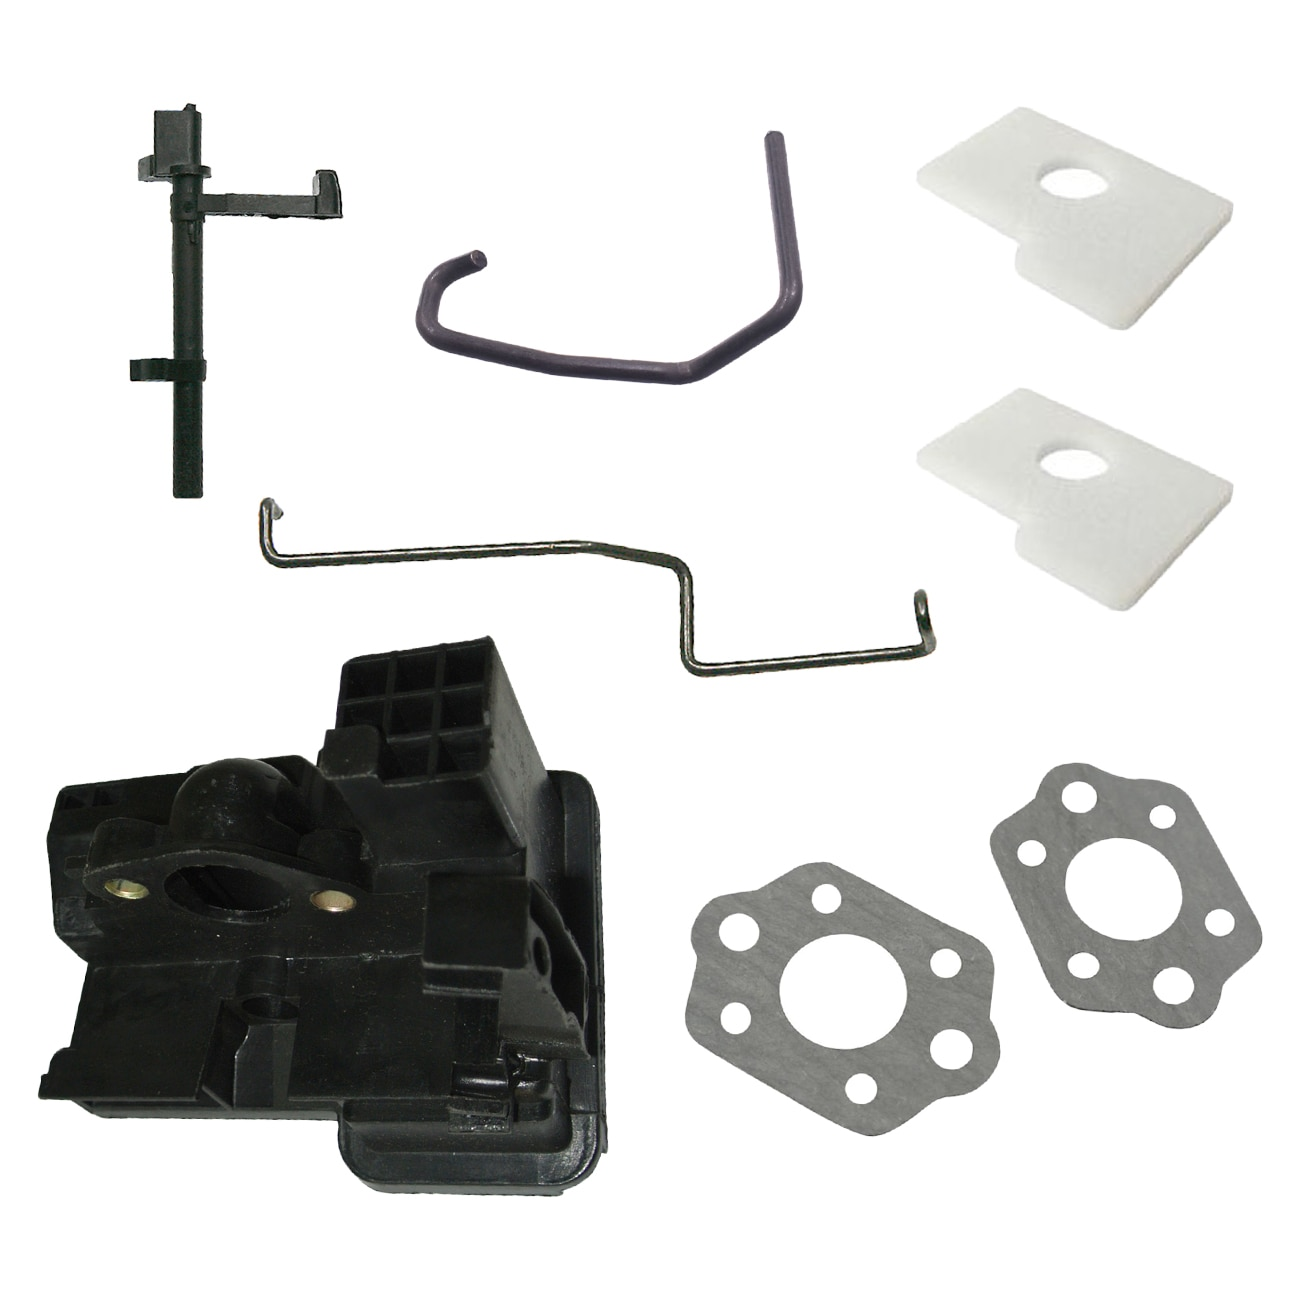 Air Filter Intake Housing Throttle Choke Rod Kit For Stihl MS180 MS170 018 017 throttle choke rod intake manifold air filter breather kit fit husqvarna ms180 ms180c ms170 018 017 chain saw parts